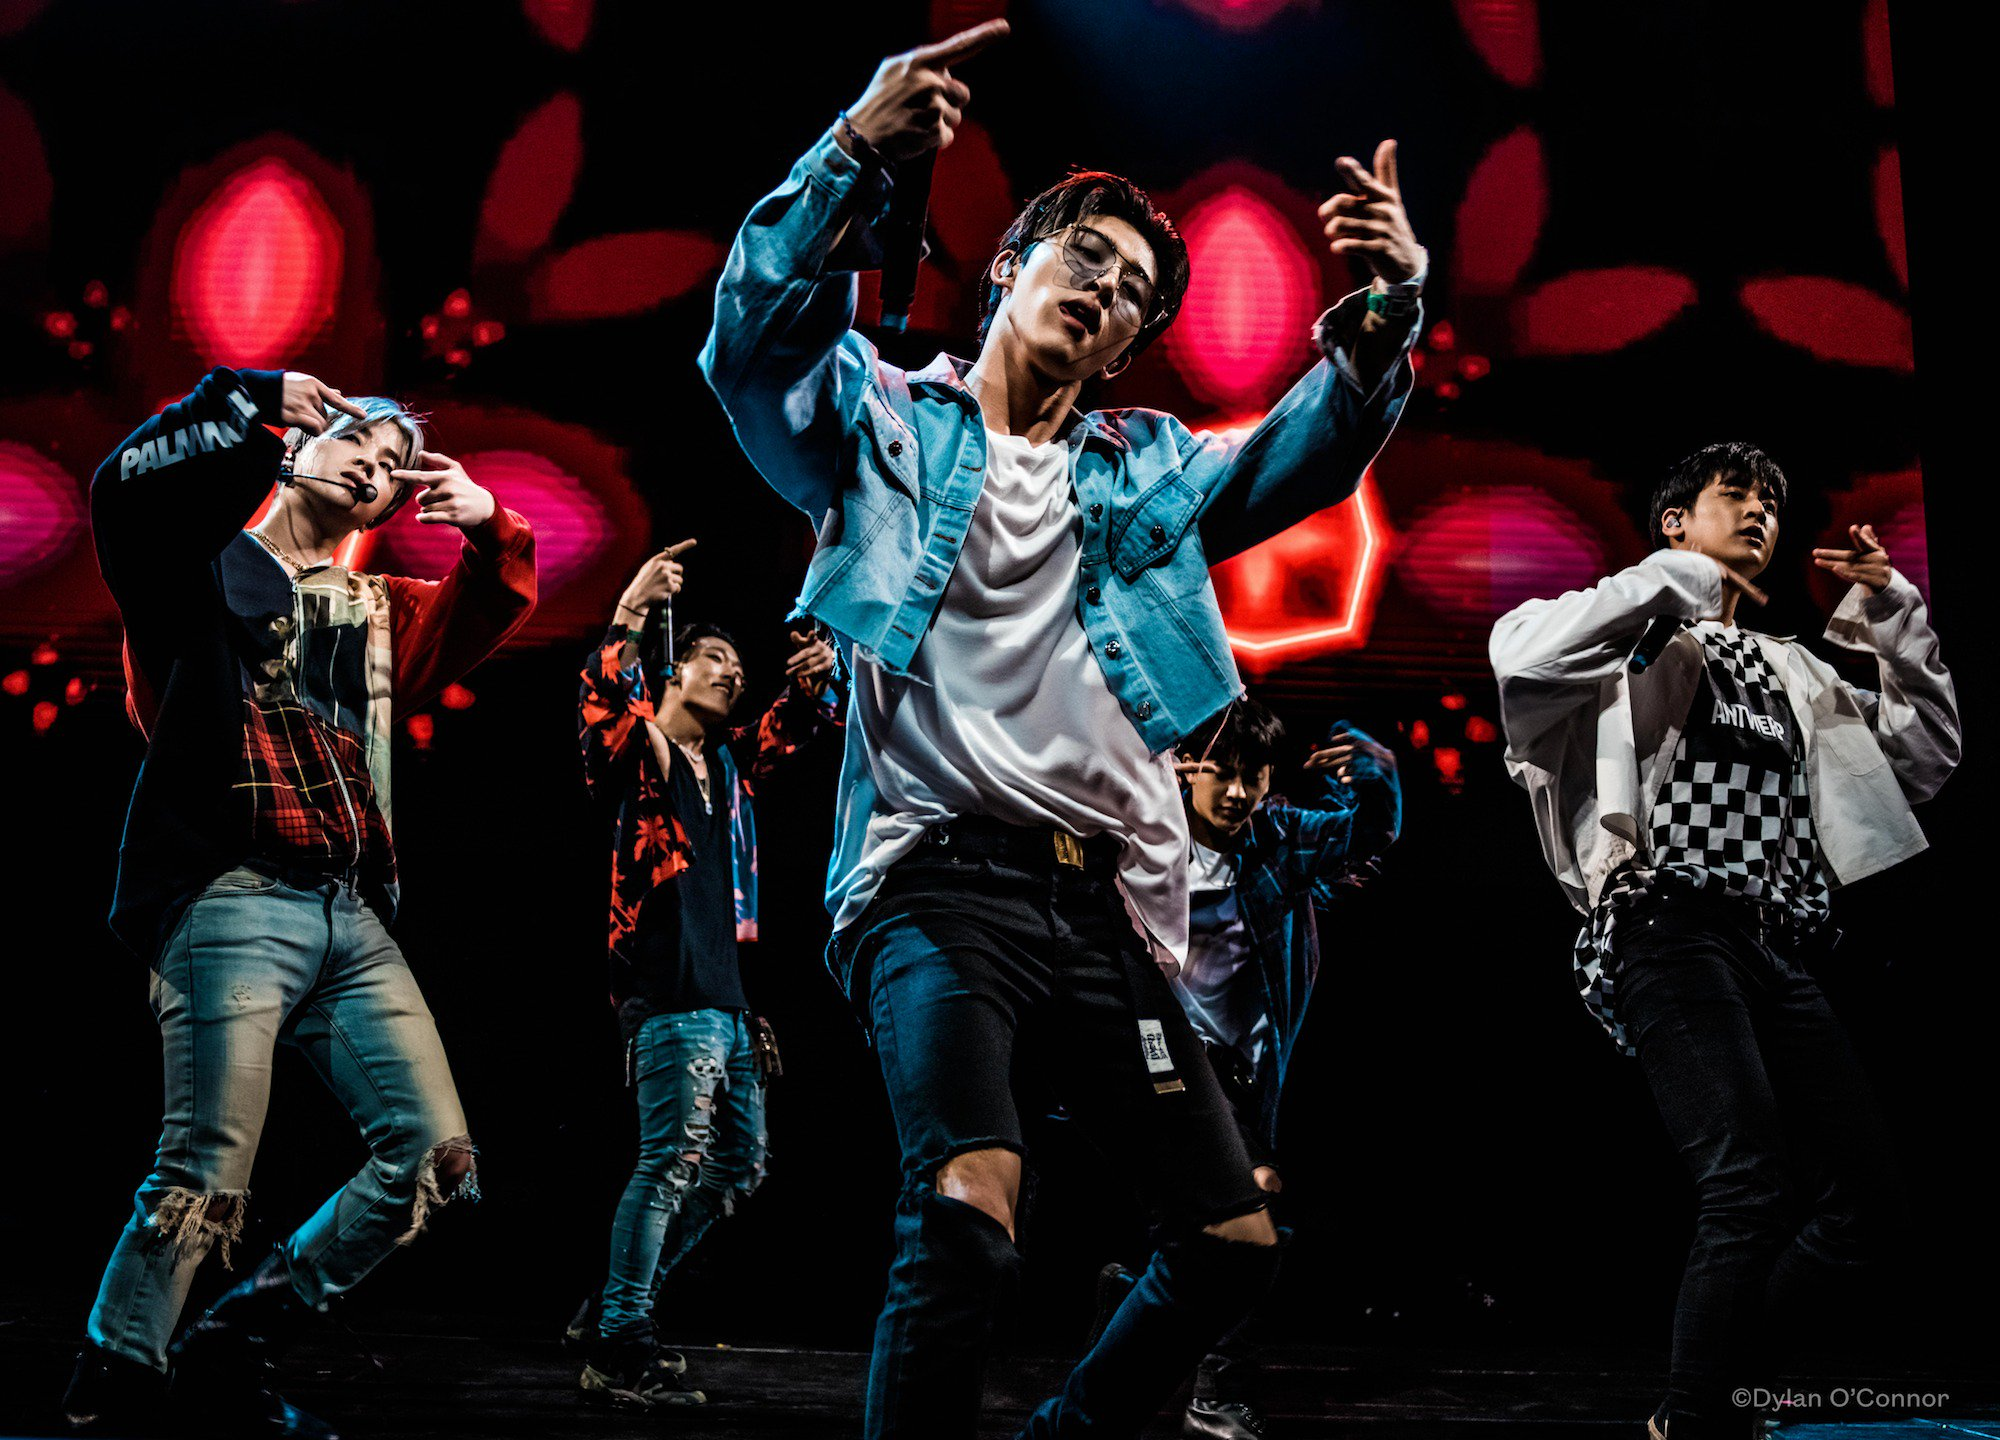 #iKON bringing down the house at @acllive to close out KOCCA's Korea Spotlight showcase tonight at #SXSW 2019! https://t.co/33xs7EZRP6